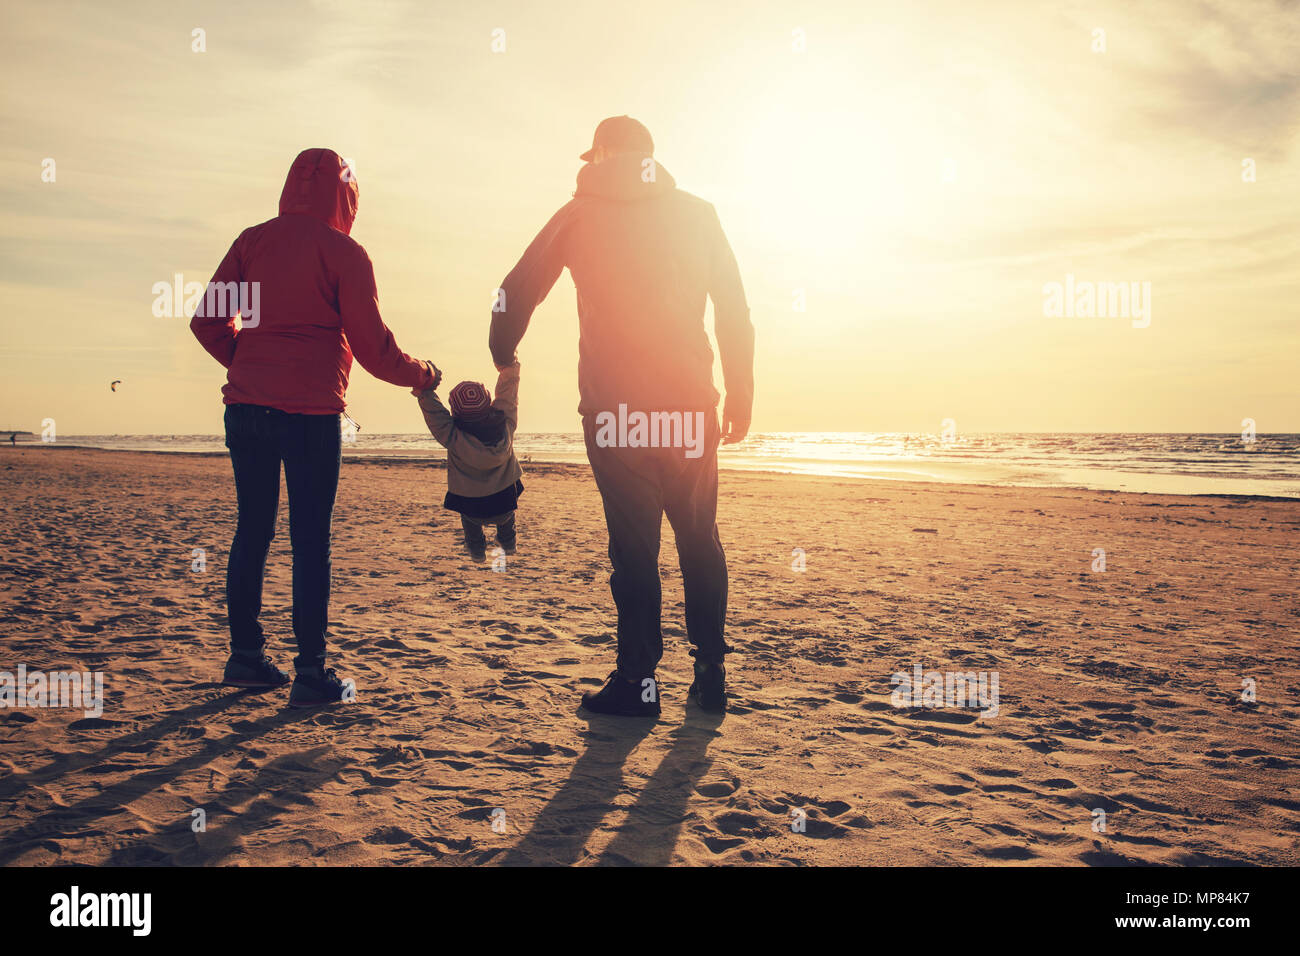 mother and father swinging child by the arms on the beach at sunset - Stock Image